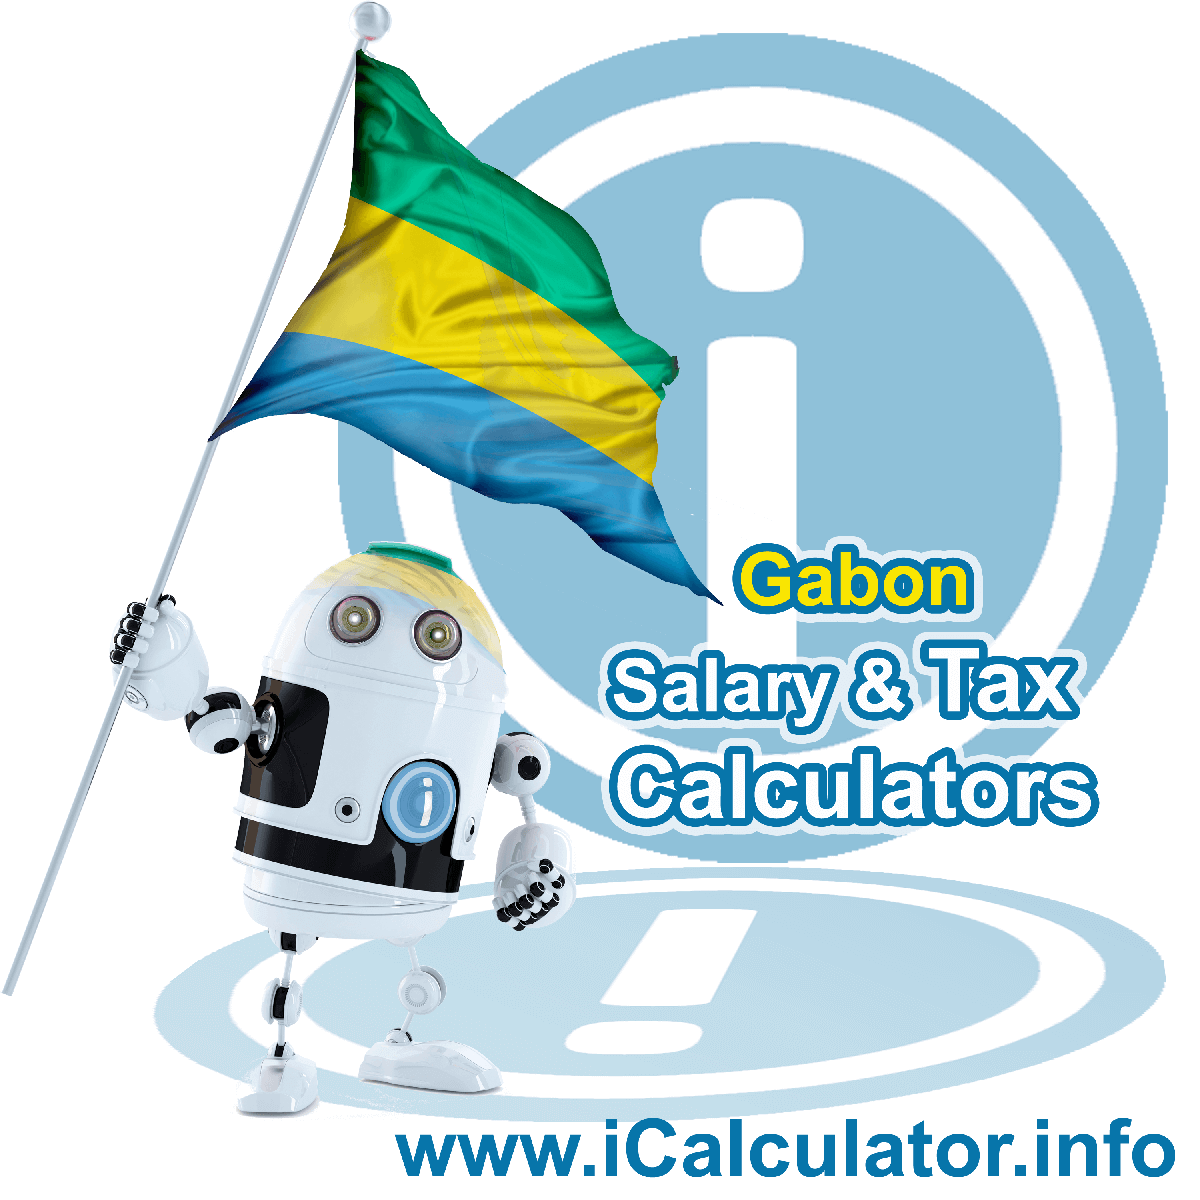 Gabon Salary Calculator. This image shows the Gabonese flag and information relating to the tax formula for the Gabon Tax Calculator